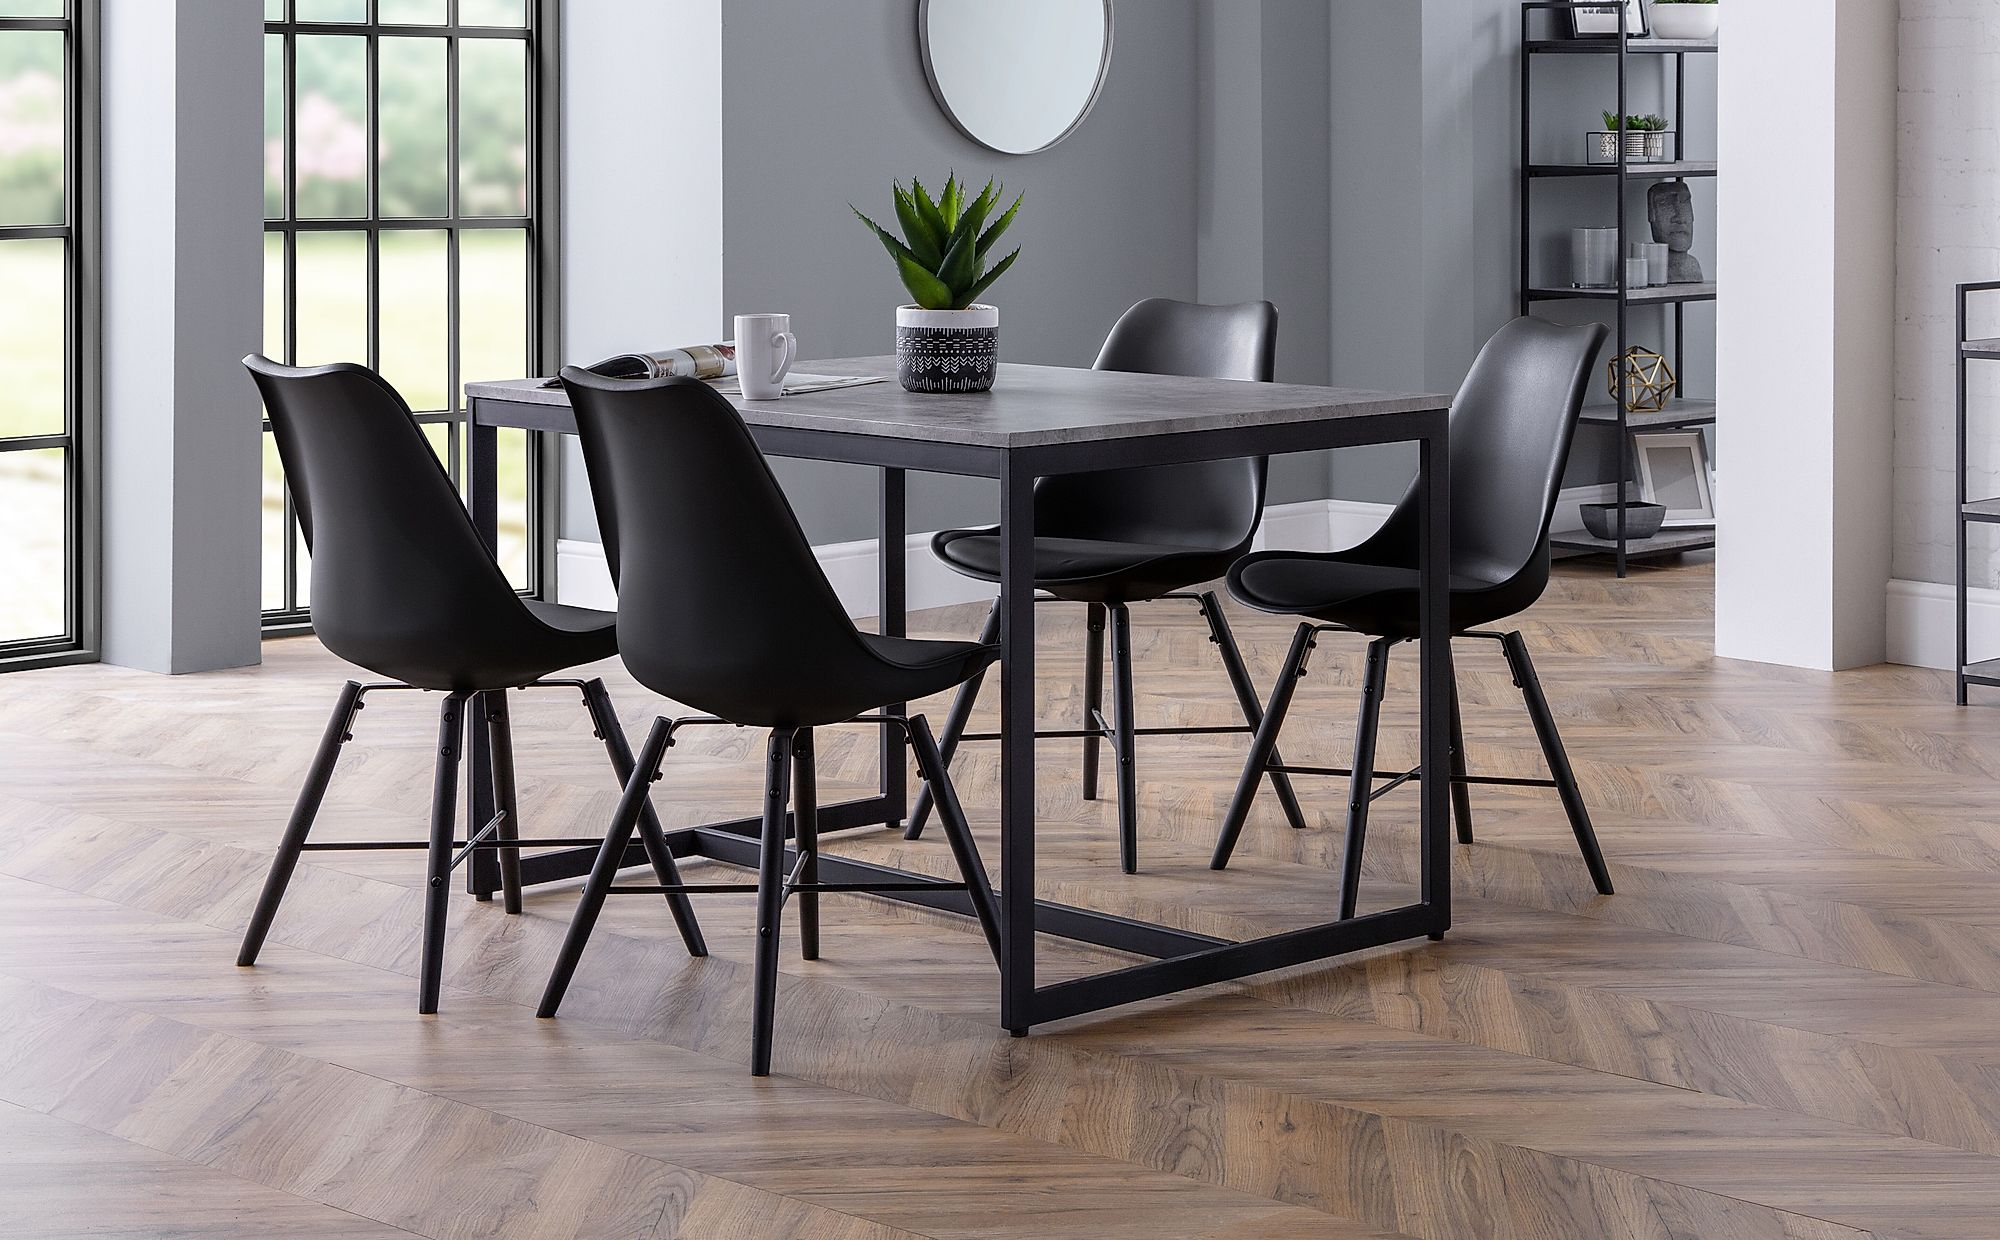 Thorpe Metal and Concrete Industrial Dining Table with 4 ...